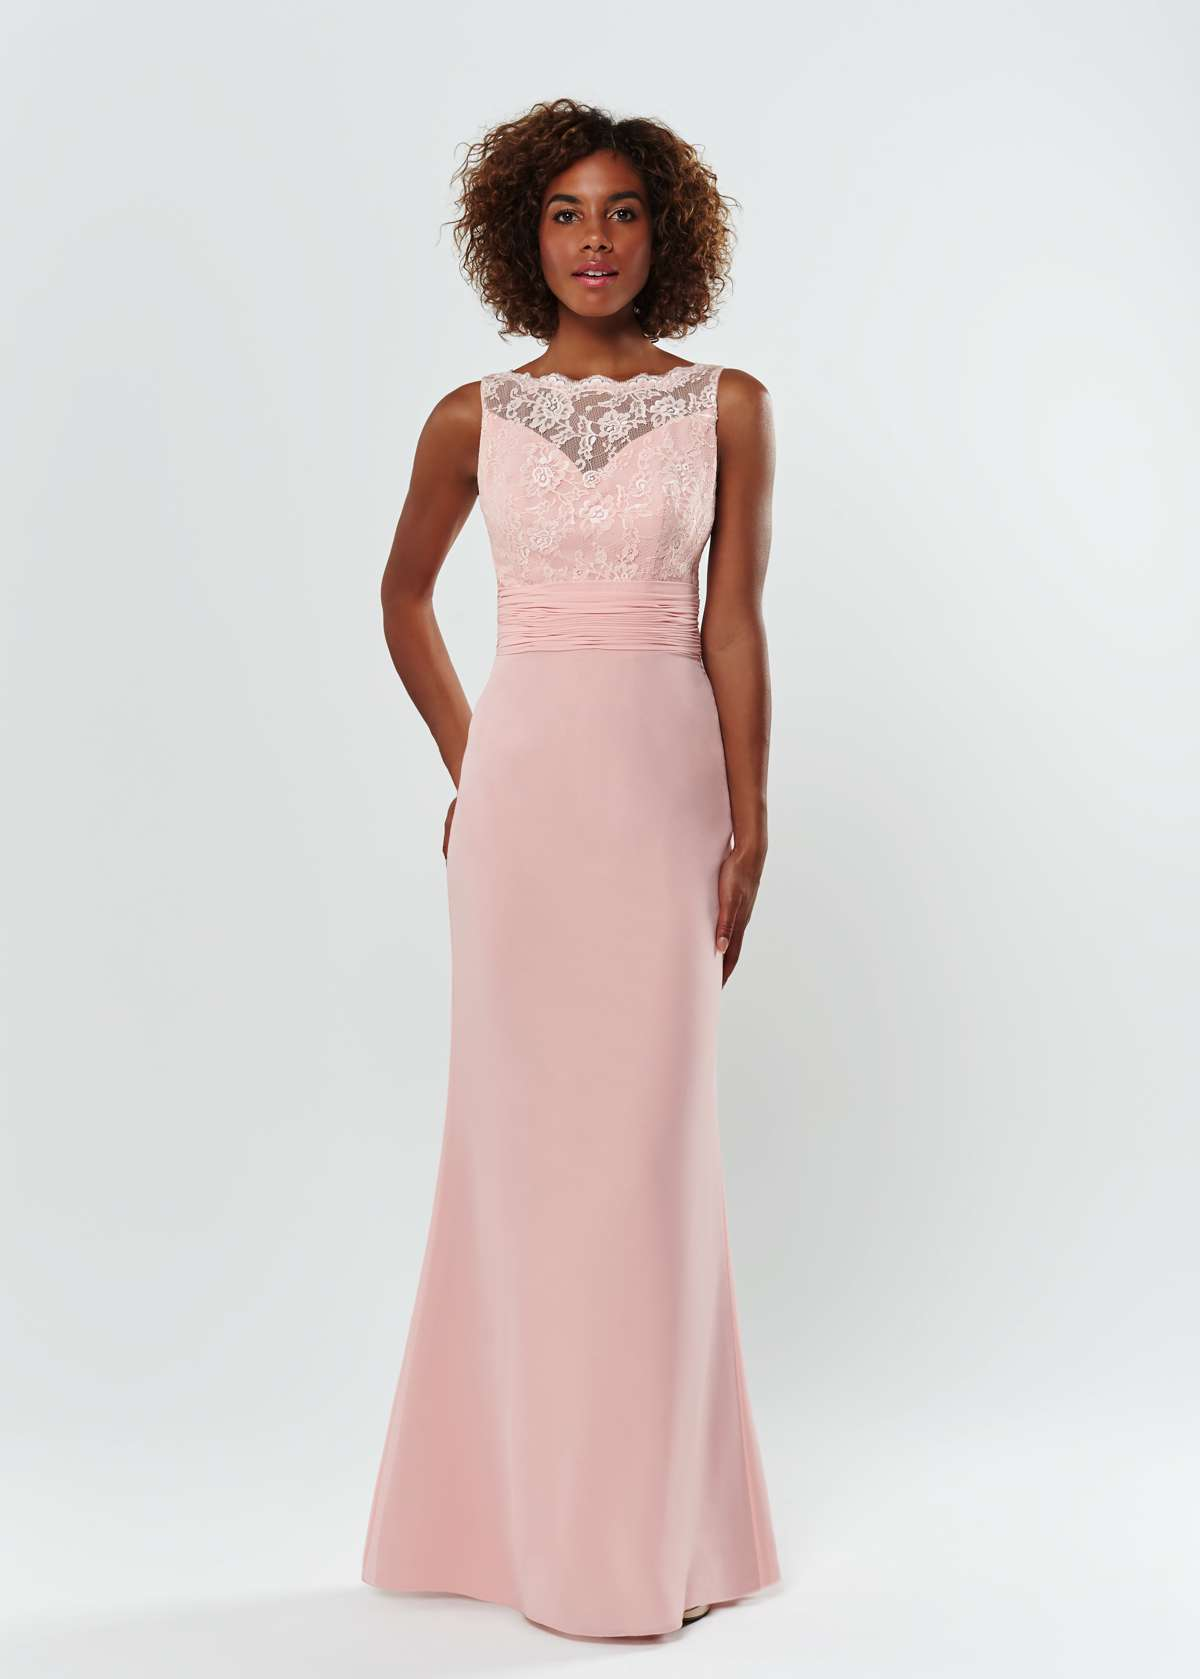 New! Bridesmaid dresses from Phil Collins Bridal - Love Our Wedding